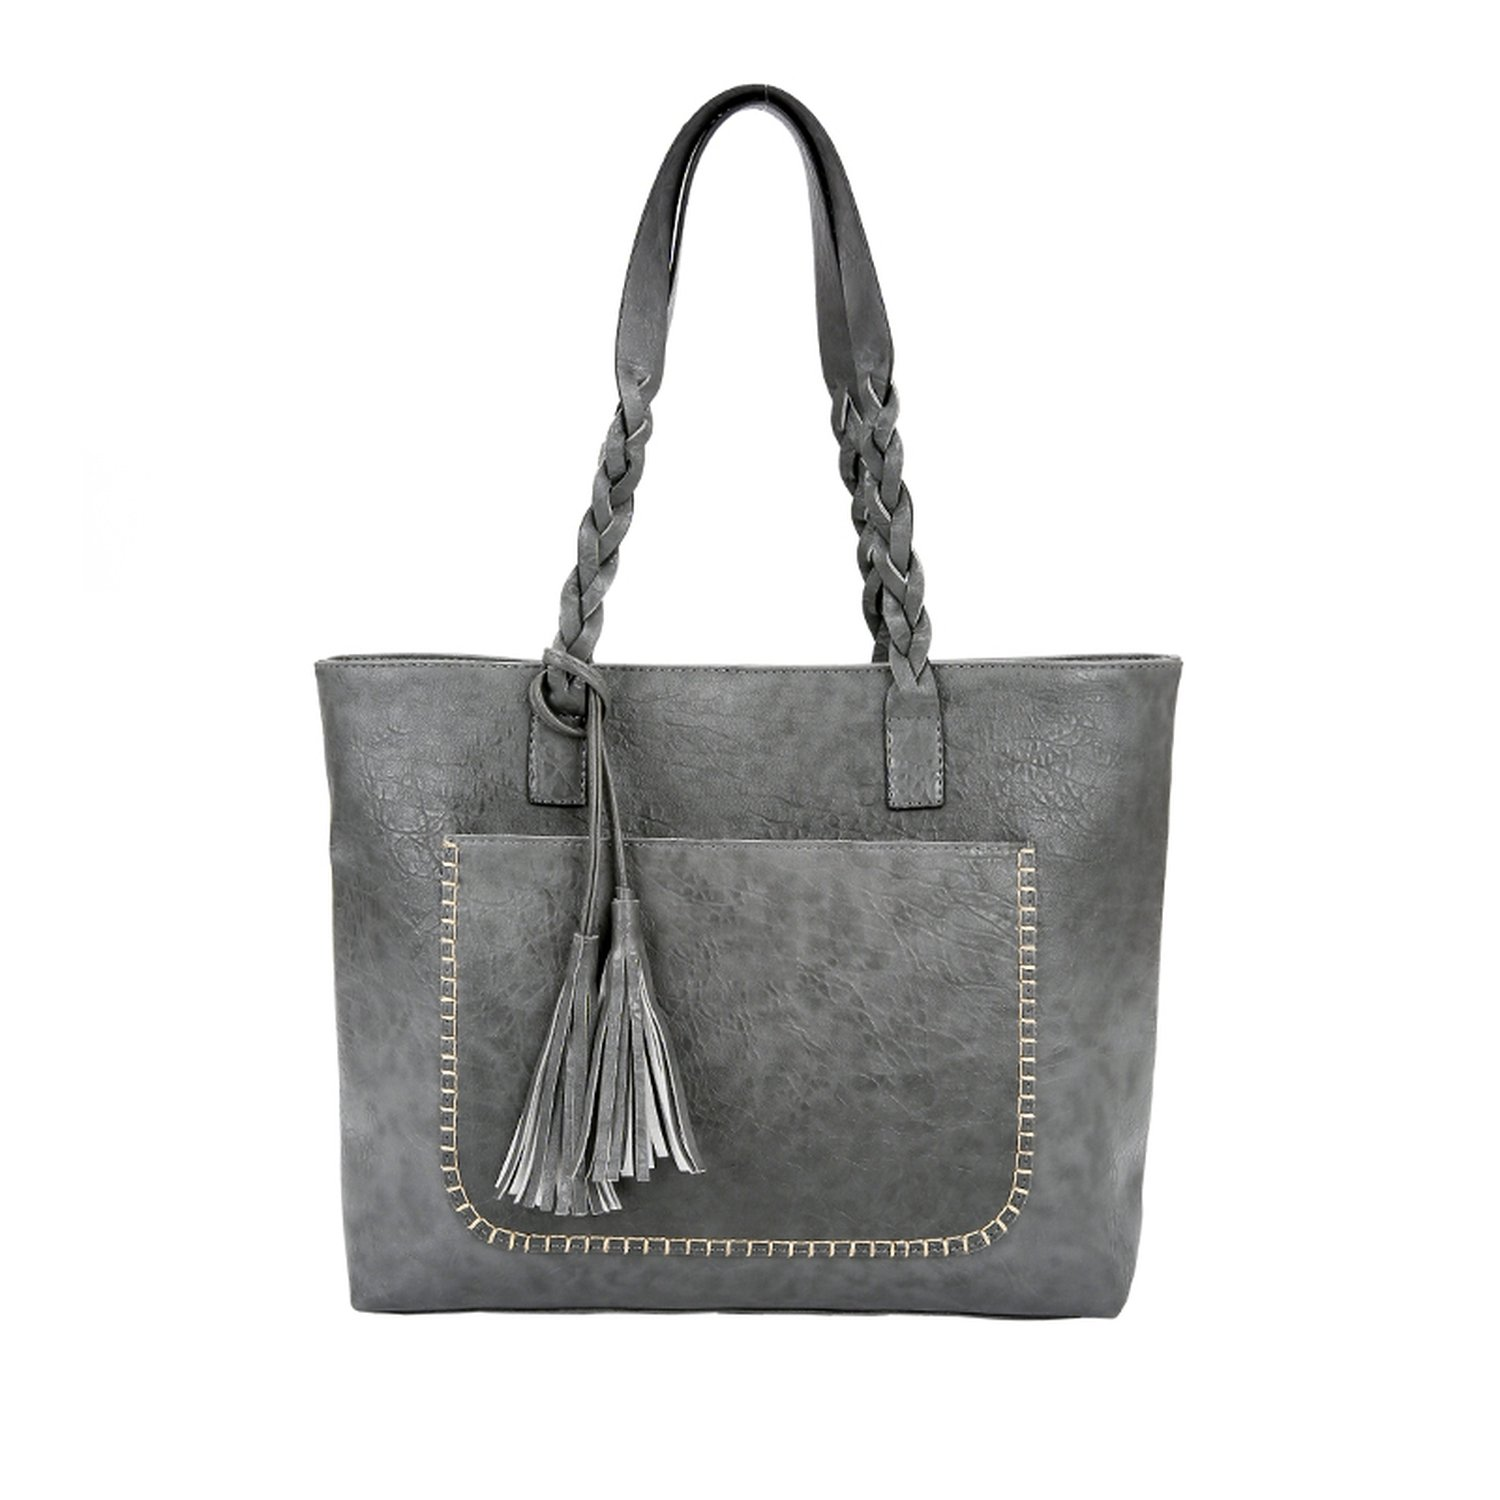 61098f5226 Amazon.com  Women Messenger Bags Large Capacity Women Bags Shoulder Bags  With Tassel Famous Designers Leather Handbags